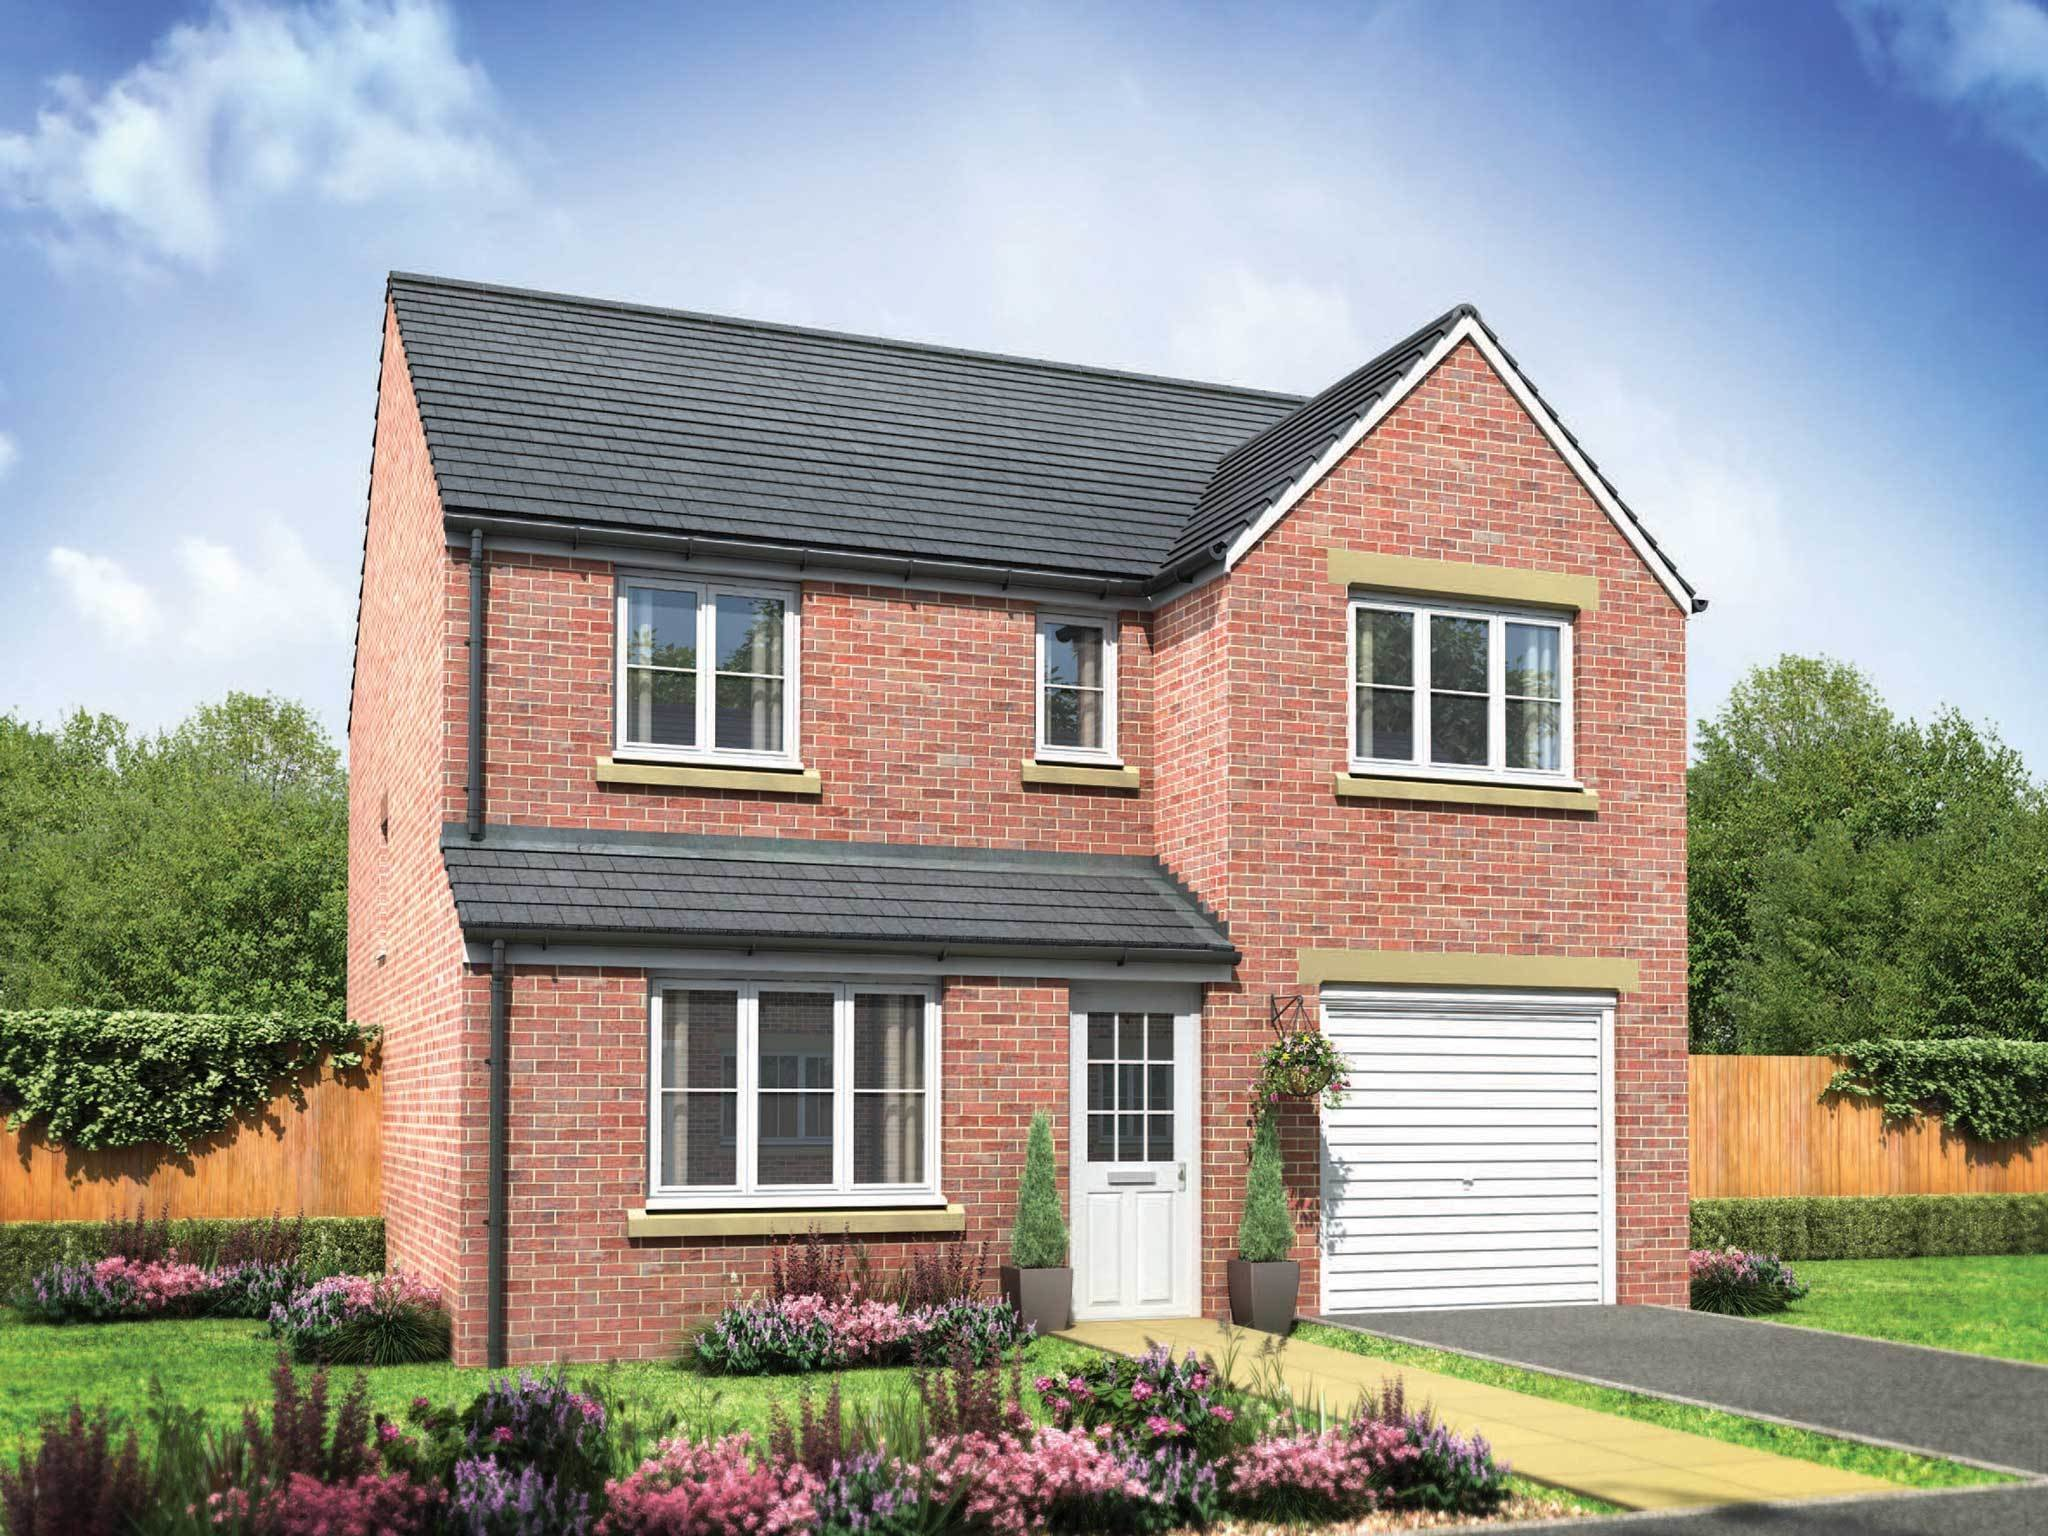 Best Houses For Sale In Wakefield West Yorkshire Wf1 2Uj With Pictures